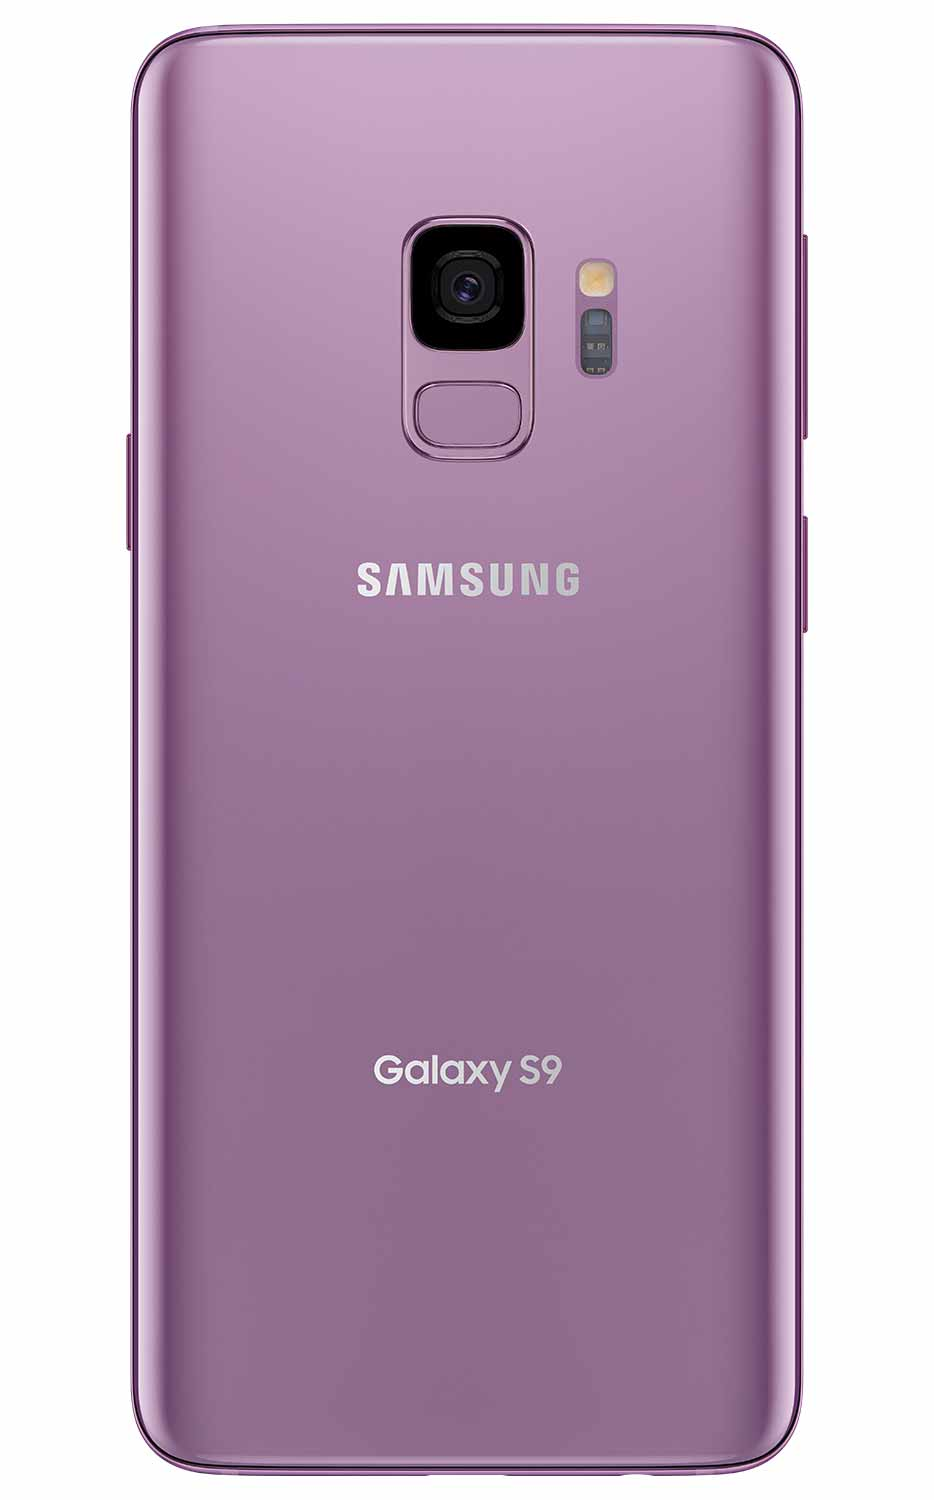 Samsung Galaxy S9 Galaxy S9 Price Specs Reviews More T Mobile